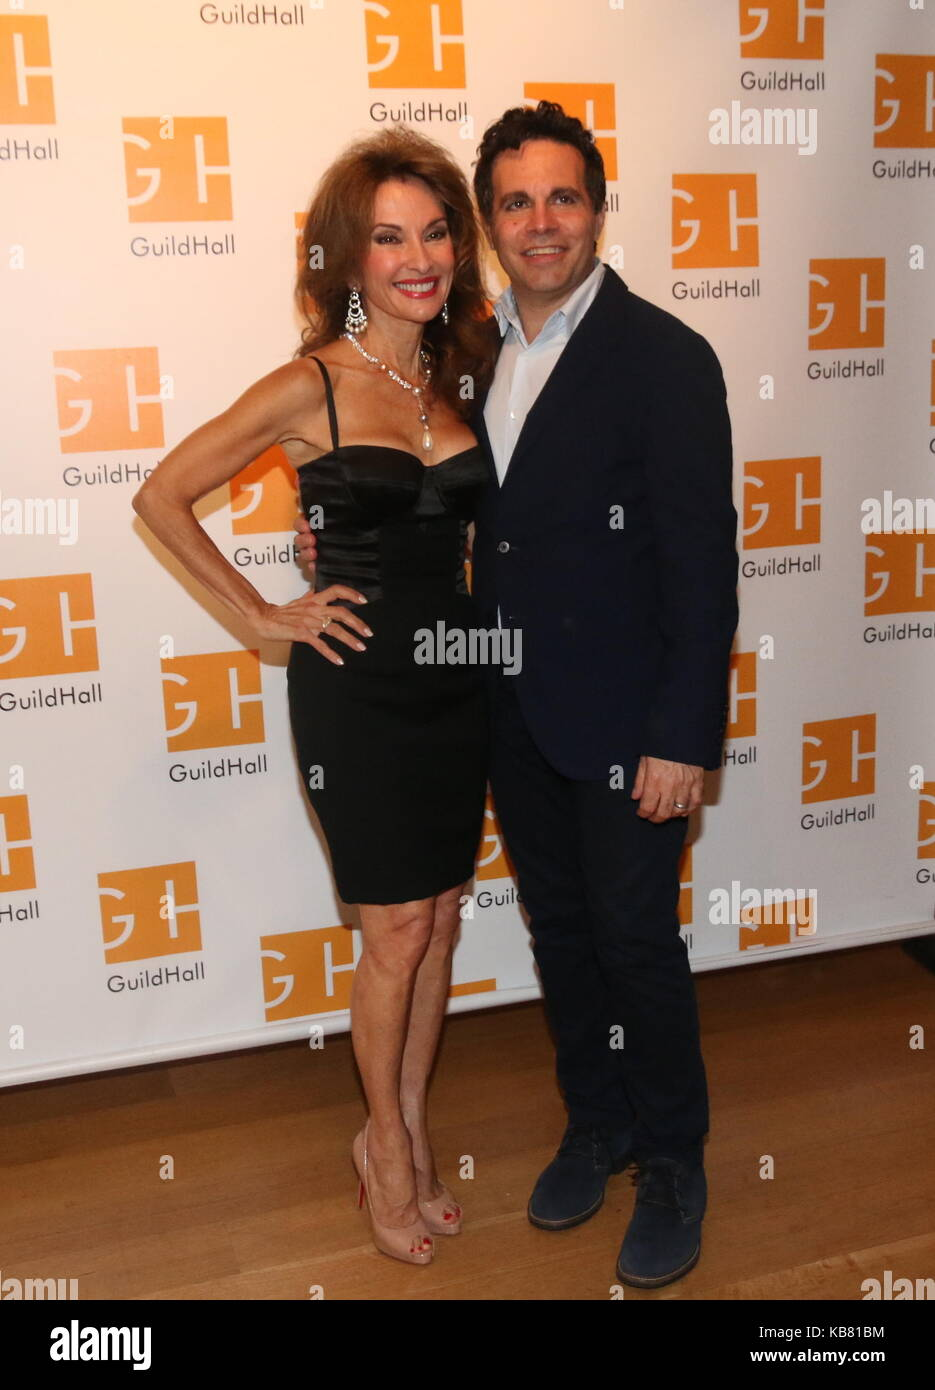 Celebrity Autobiography Guild Hall 2017  Featuring: Susan Lucci, Mario Cantone Where: East Hampton, New York, United Stock Photo